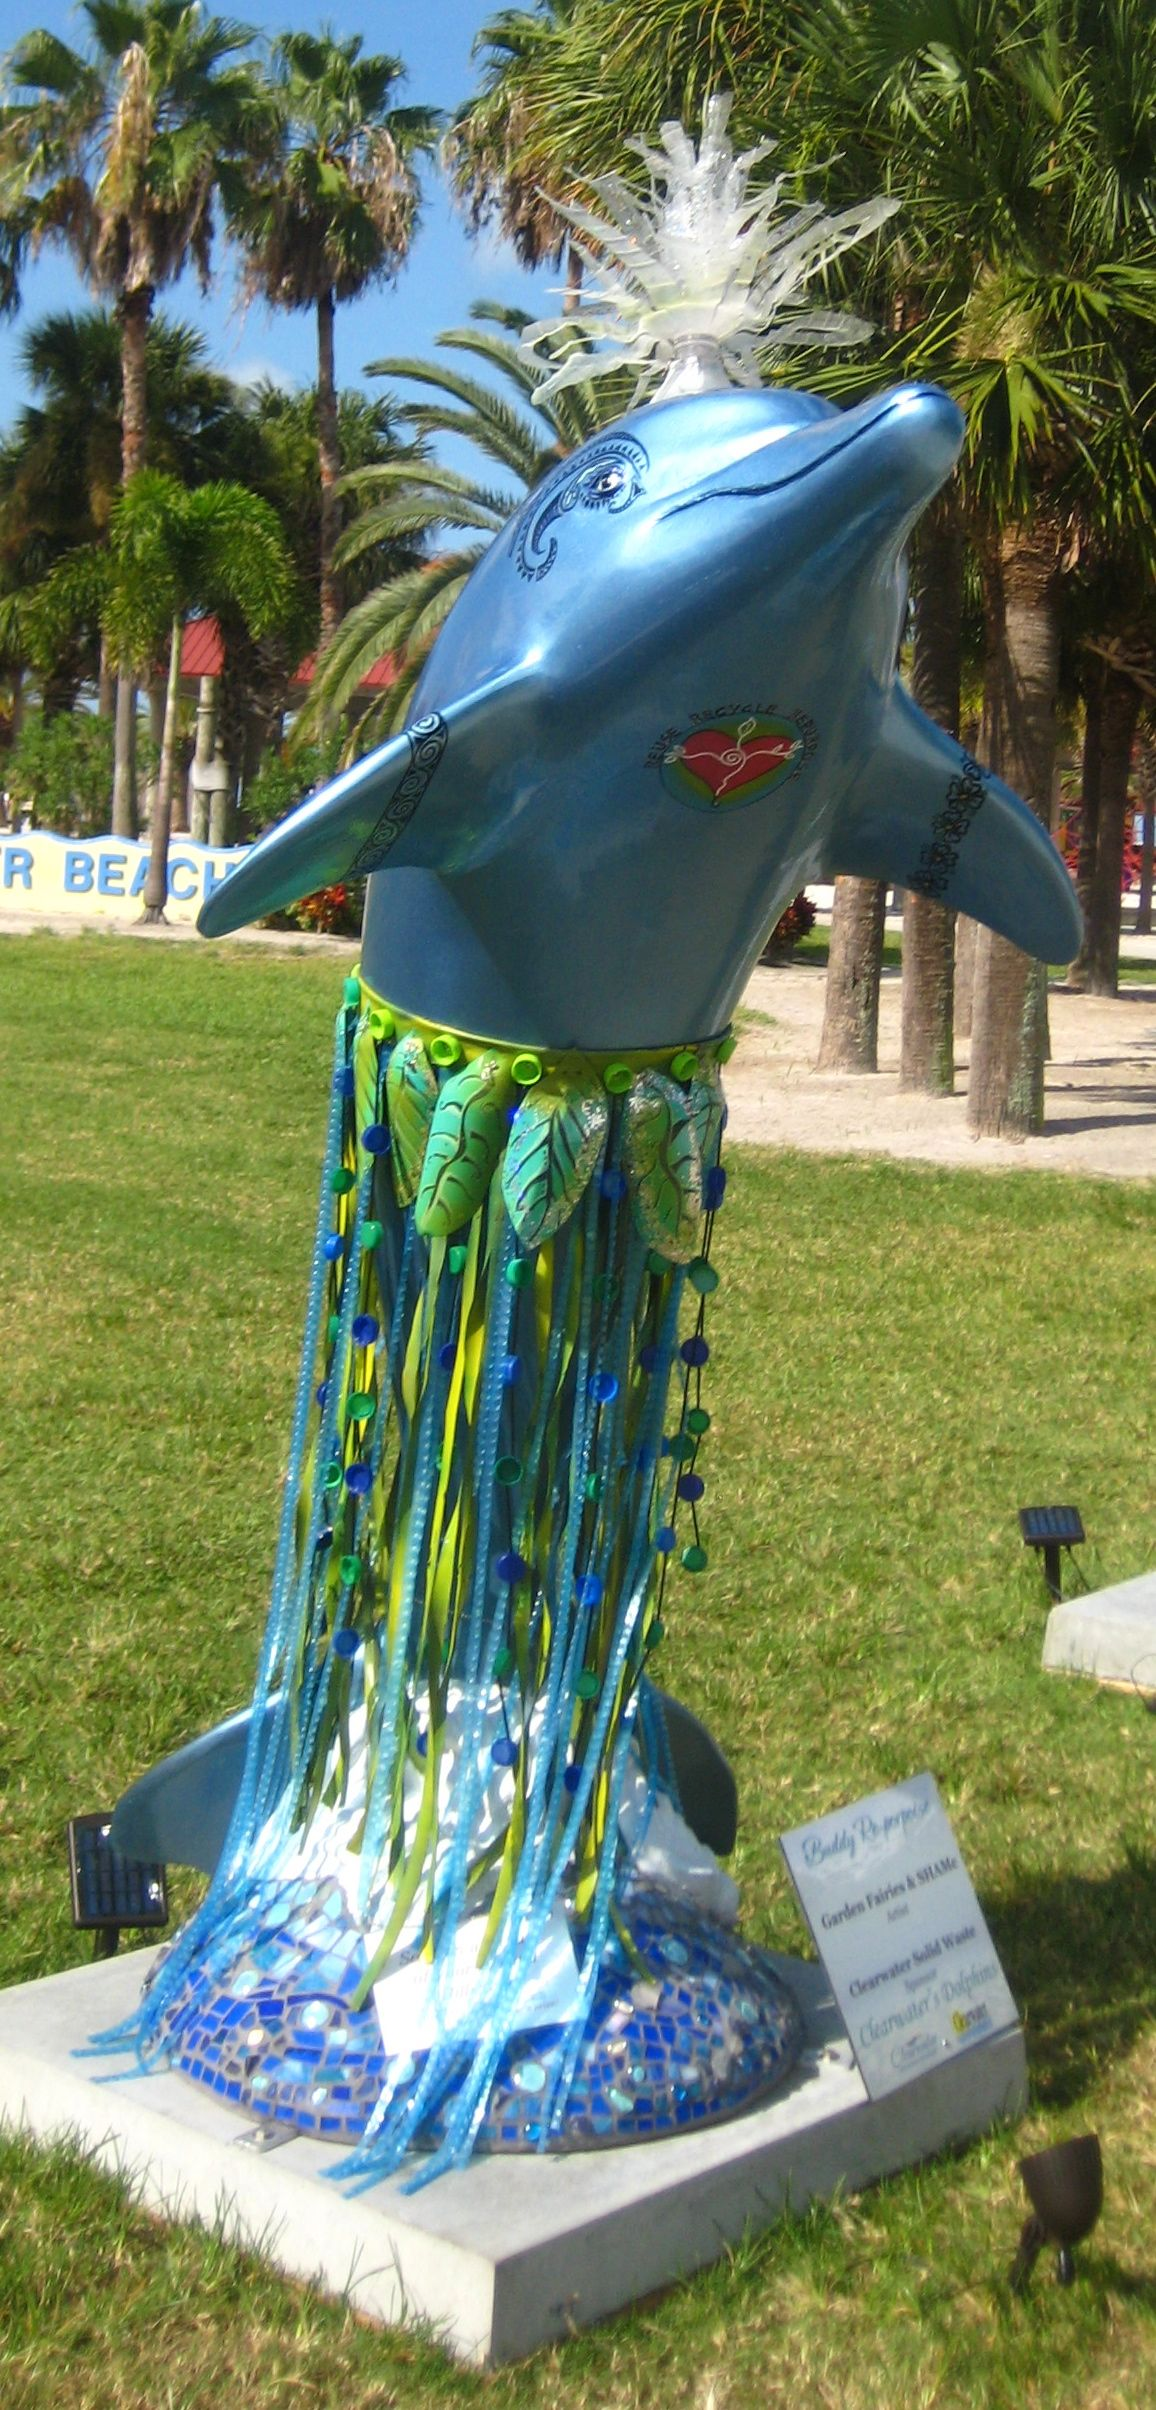 """Clearwater, Florida - Pier 60 Clearwater Dolphin Pod - """"Hillary Hula Dolphin"""" - 100 fiberglass bottlenose dolphin statues, 6 ft tall"""